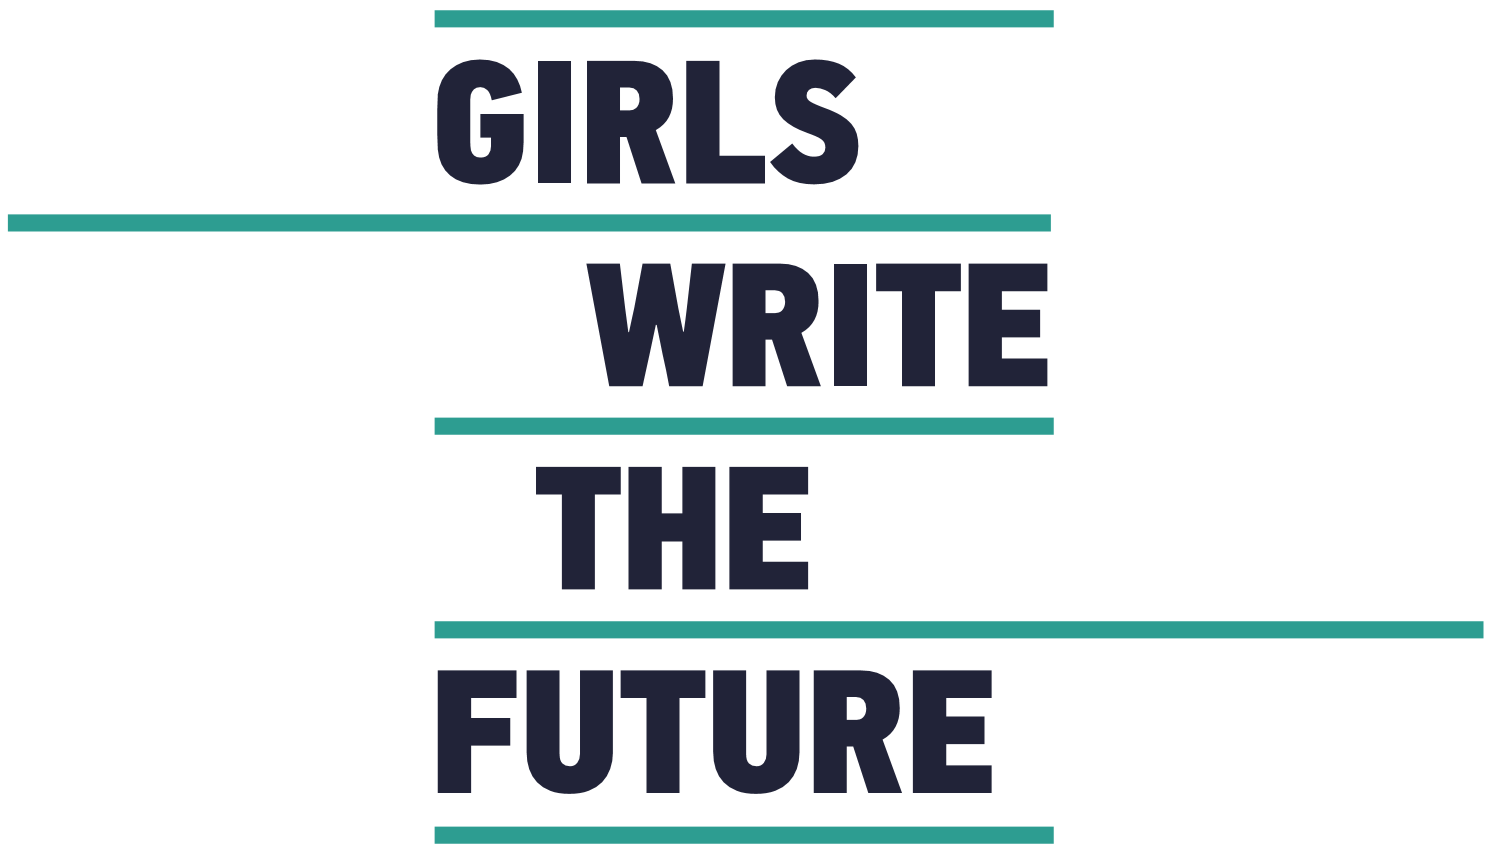 Girls Write the Future